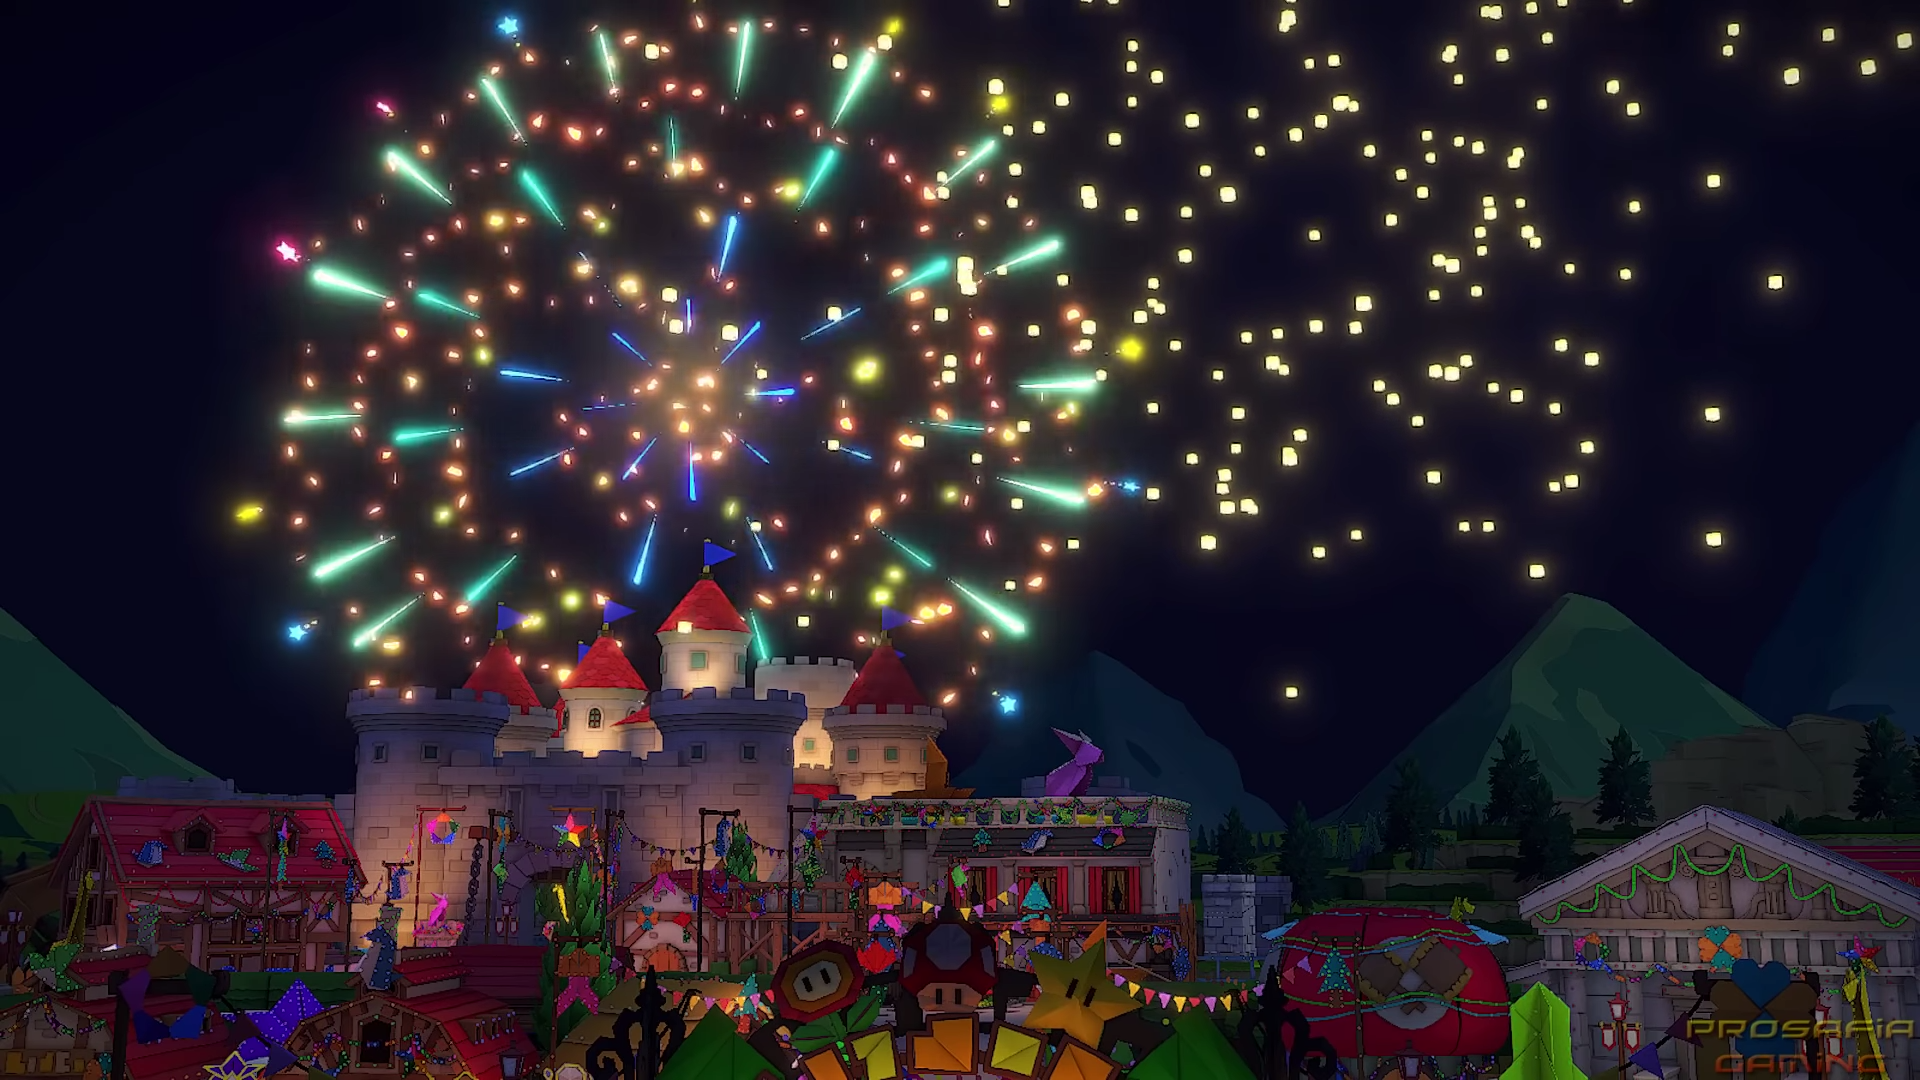 Origami crane lanterns fly into the sky while Toad Town celebrates.